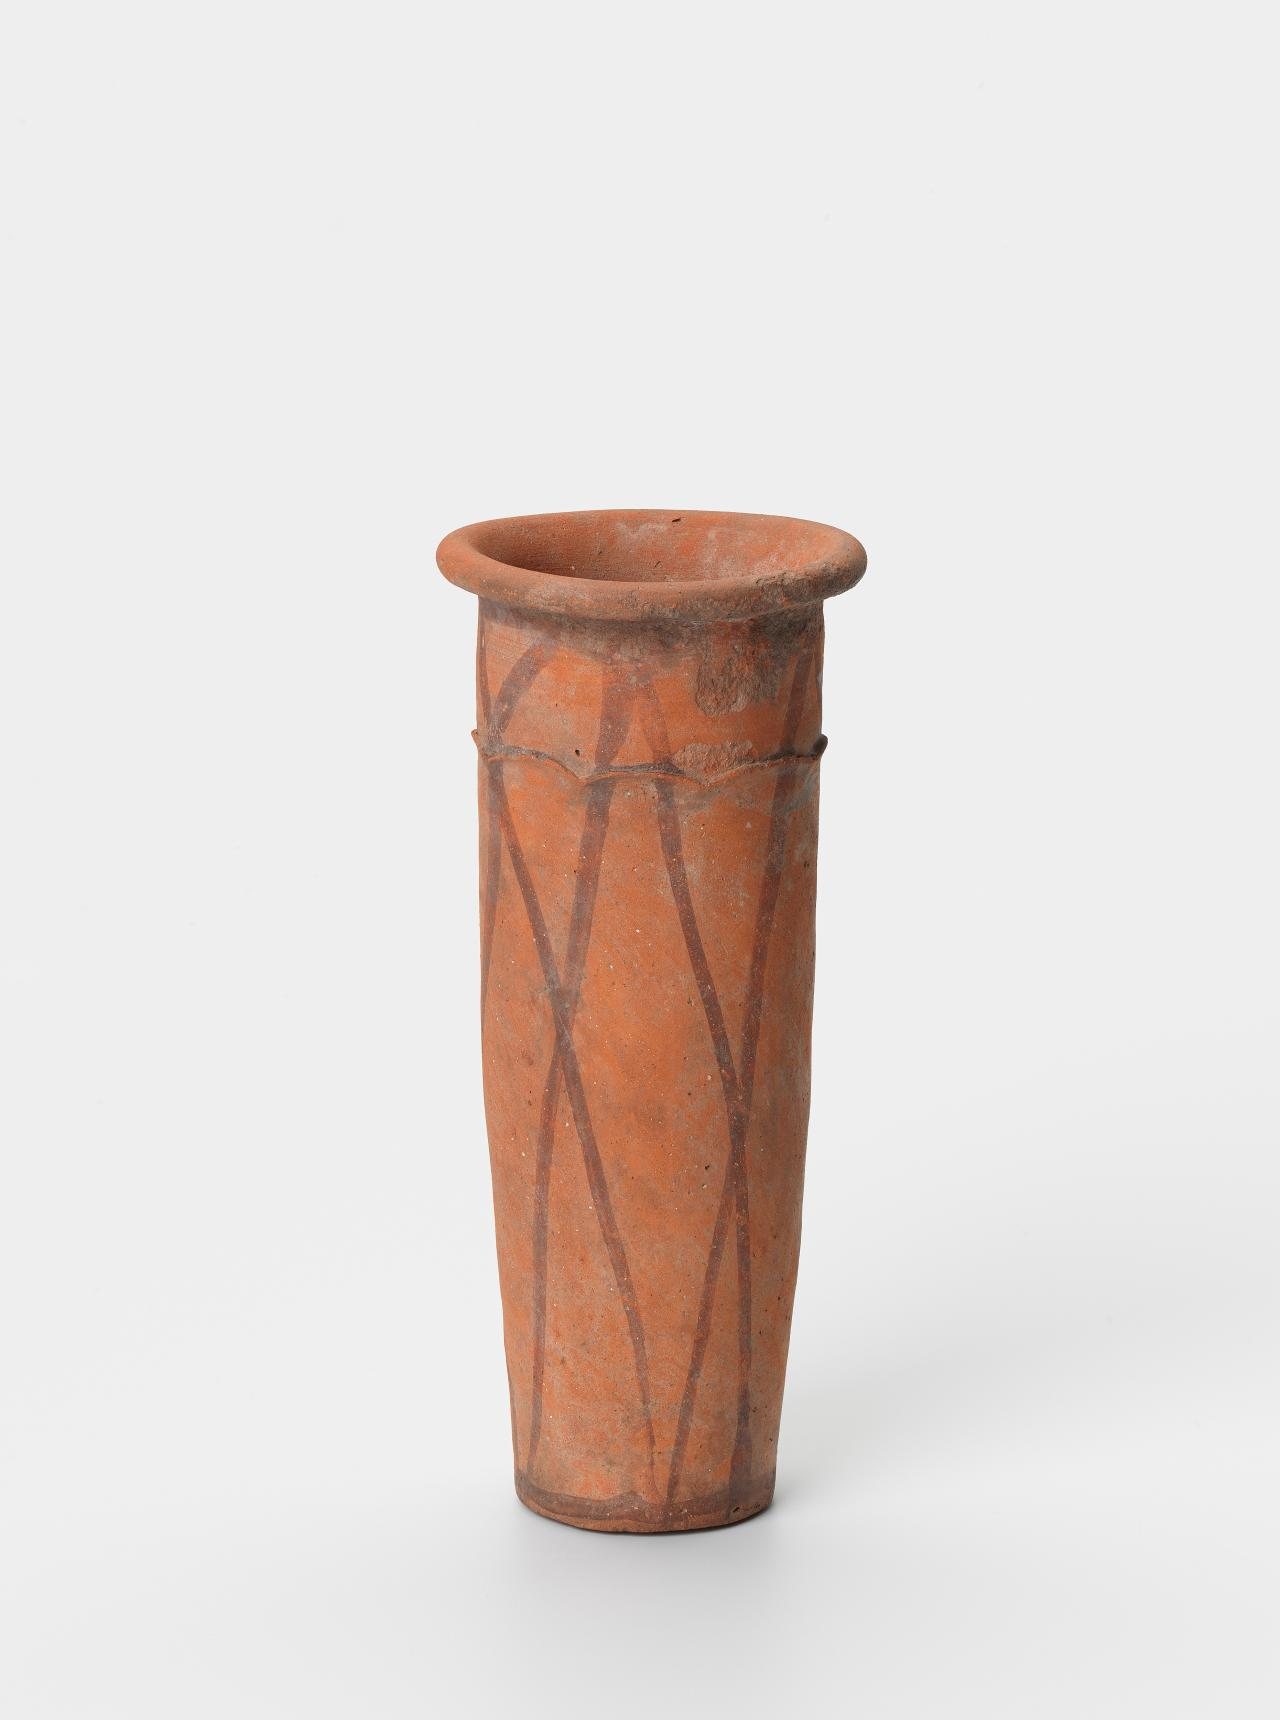 Jar (wavy-handled ware)